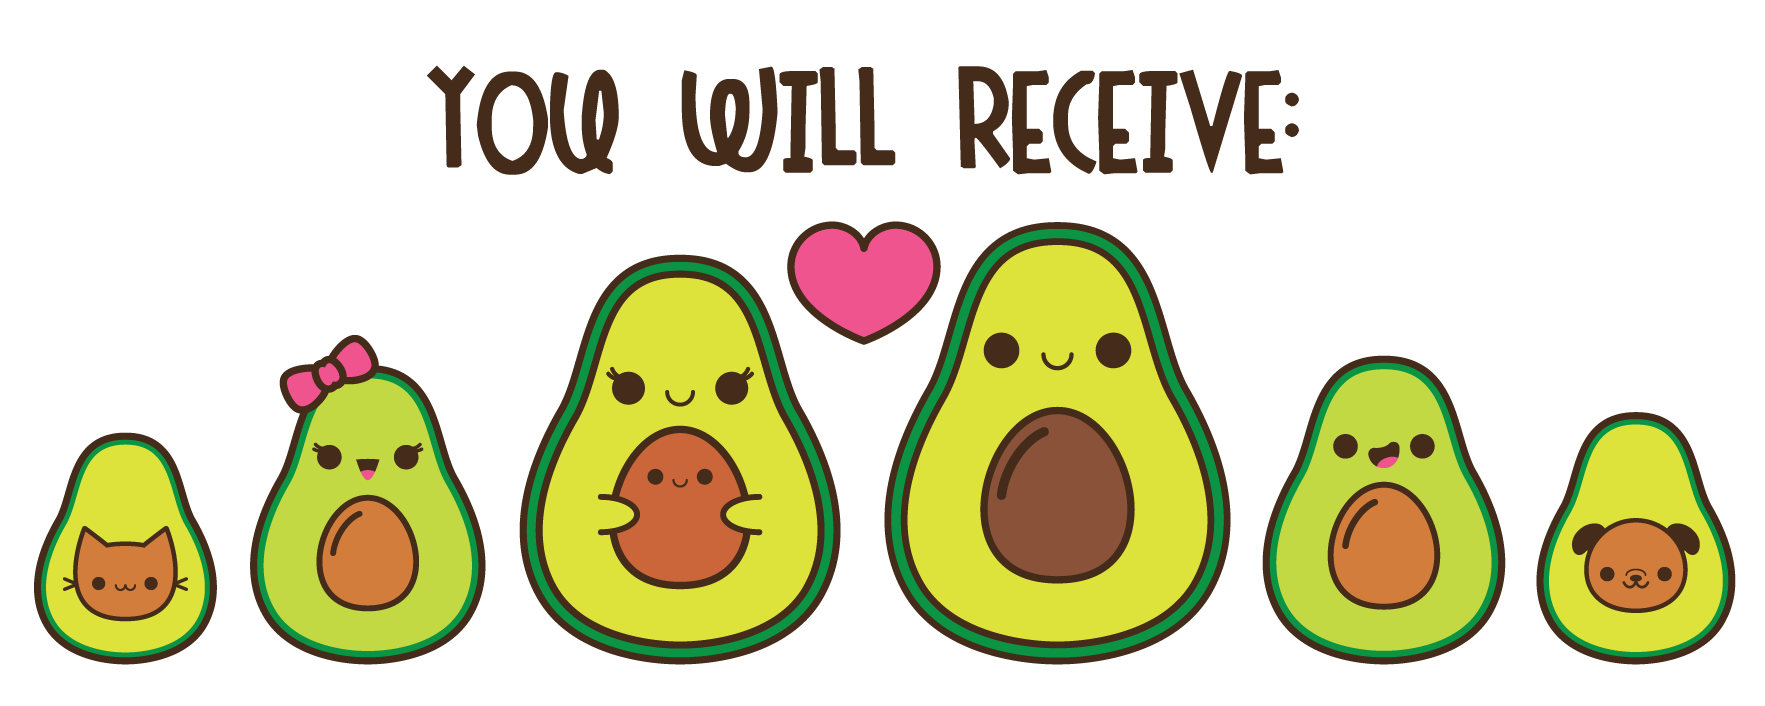 Cute Pictures Of Avocados